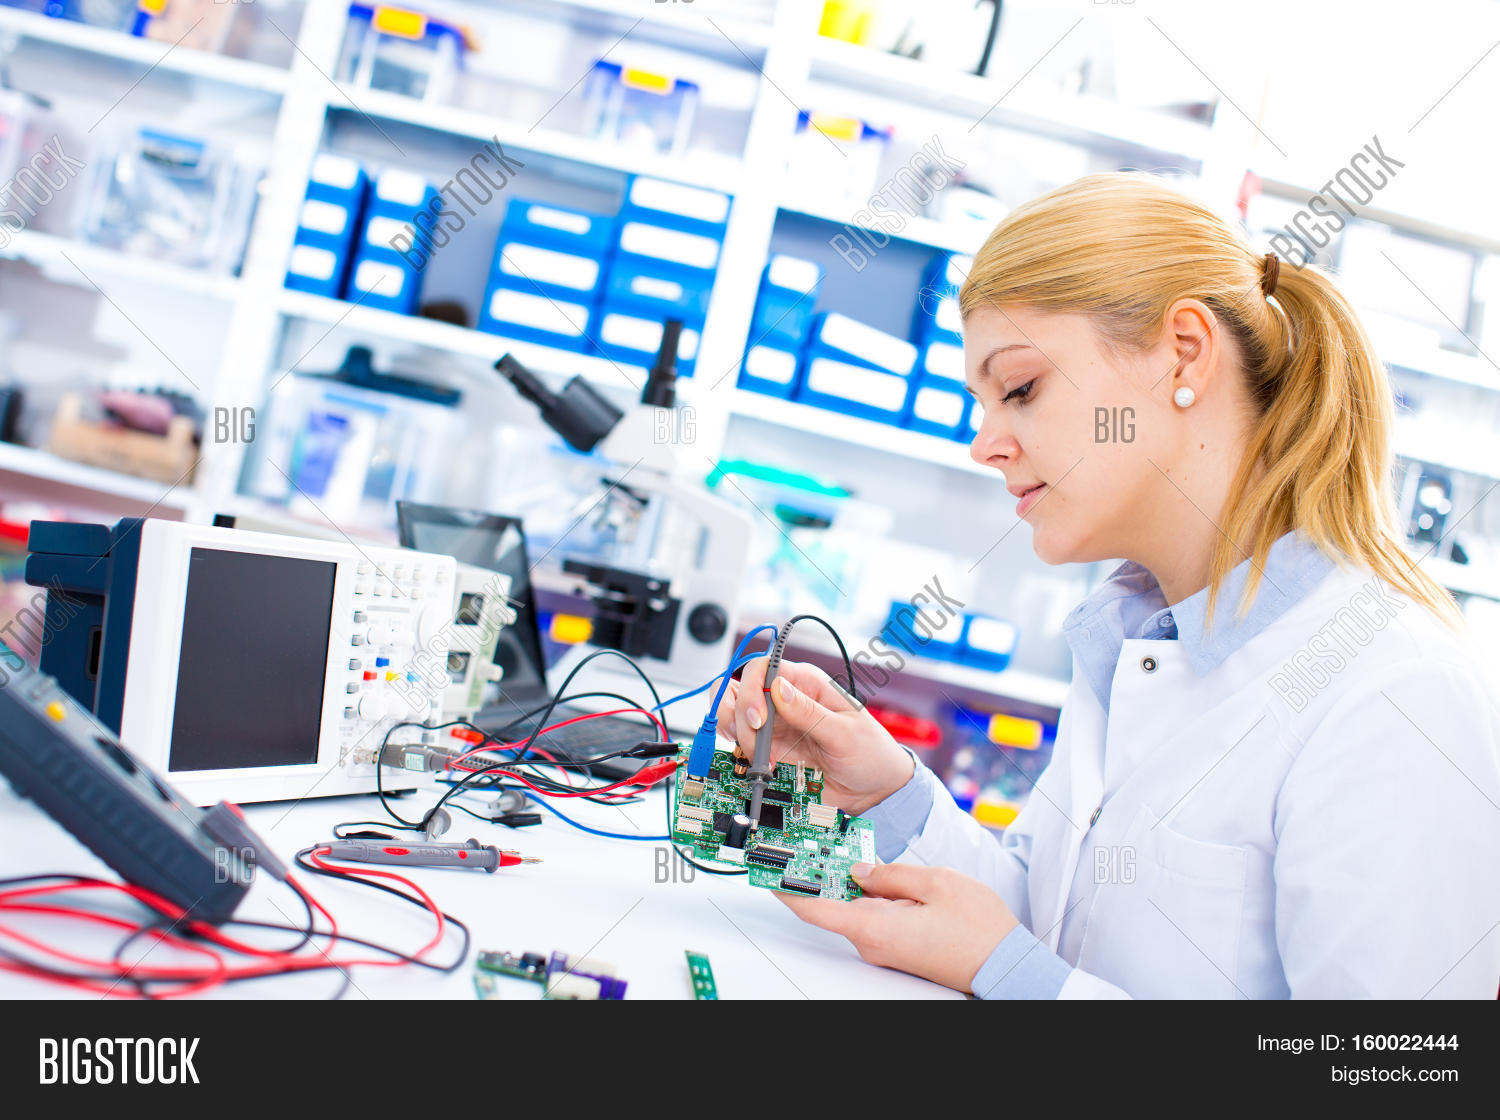 Engineer Working Image Photo Free Trial Bigstock Circuitboardtablejpg With Circuits A Woman Solders Sitting At Table Girl